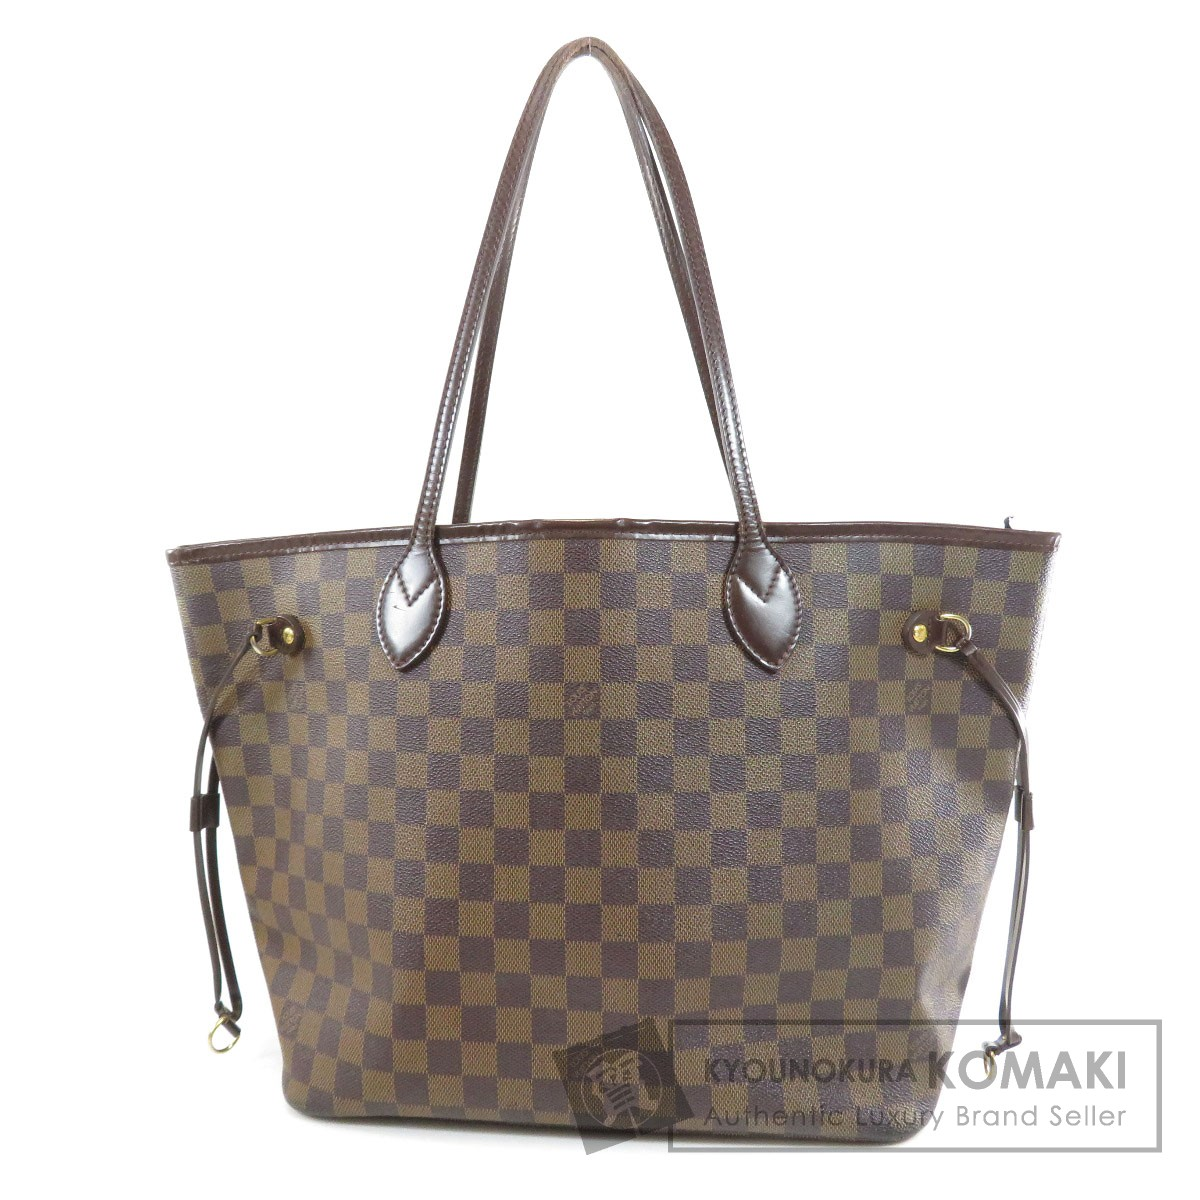 e88f49d66335 Kyonokura Komaki Brand Cheapest Challenger: Authentic LOUIS VUITTON ...